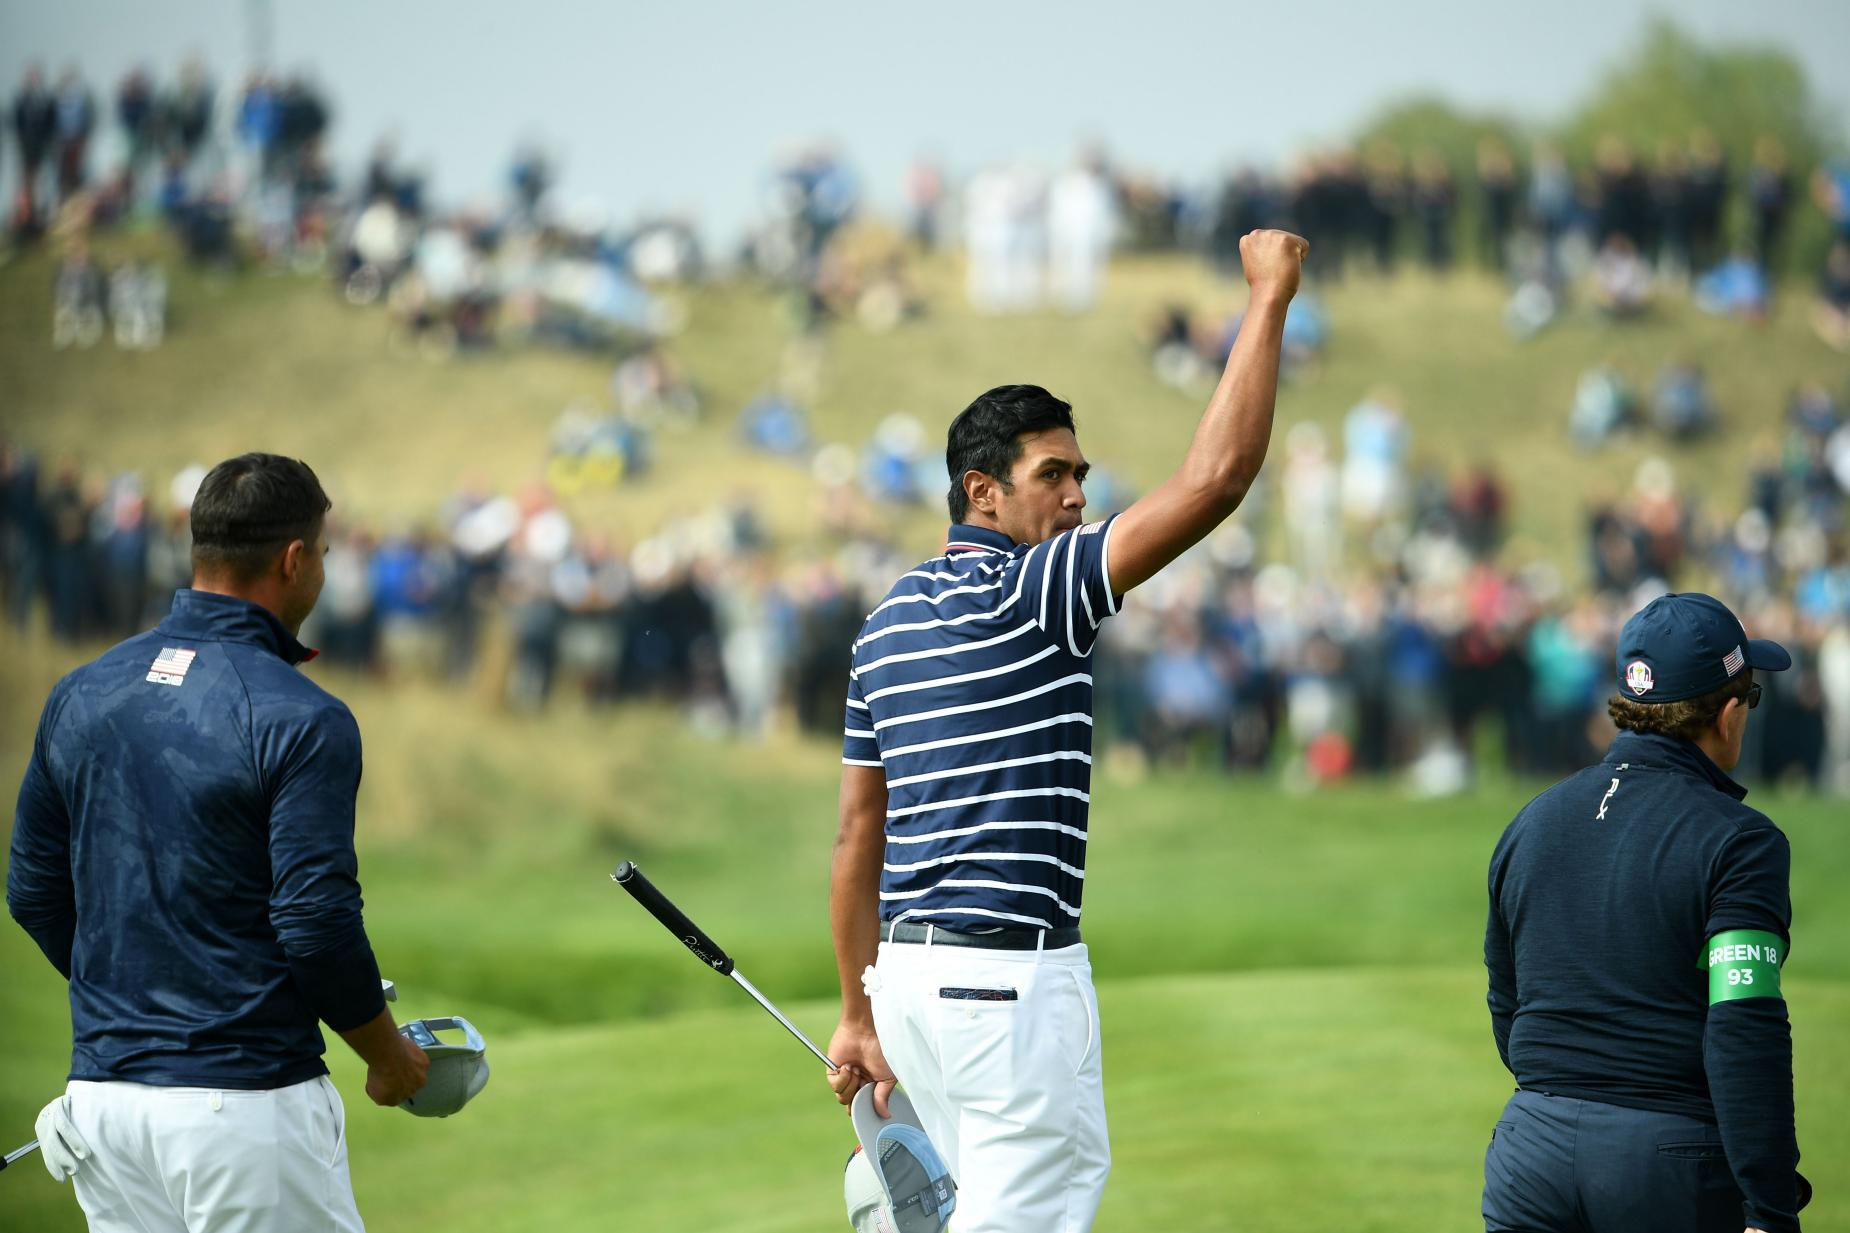 GOLF-FRA-RYDER-CUP-DAY ONE